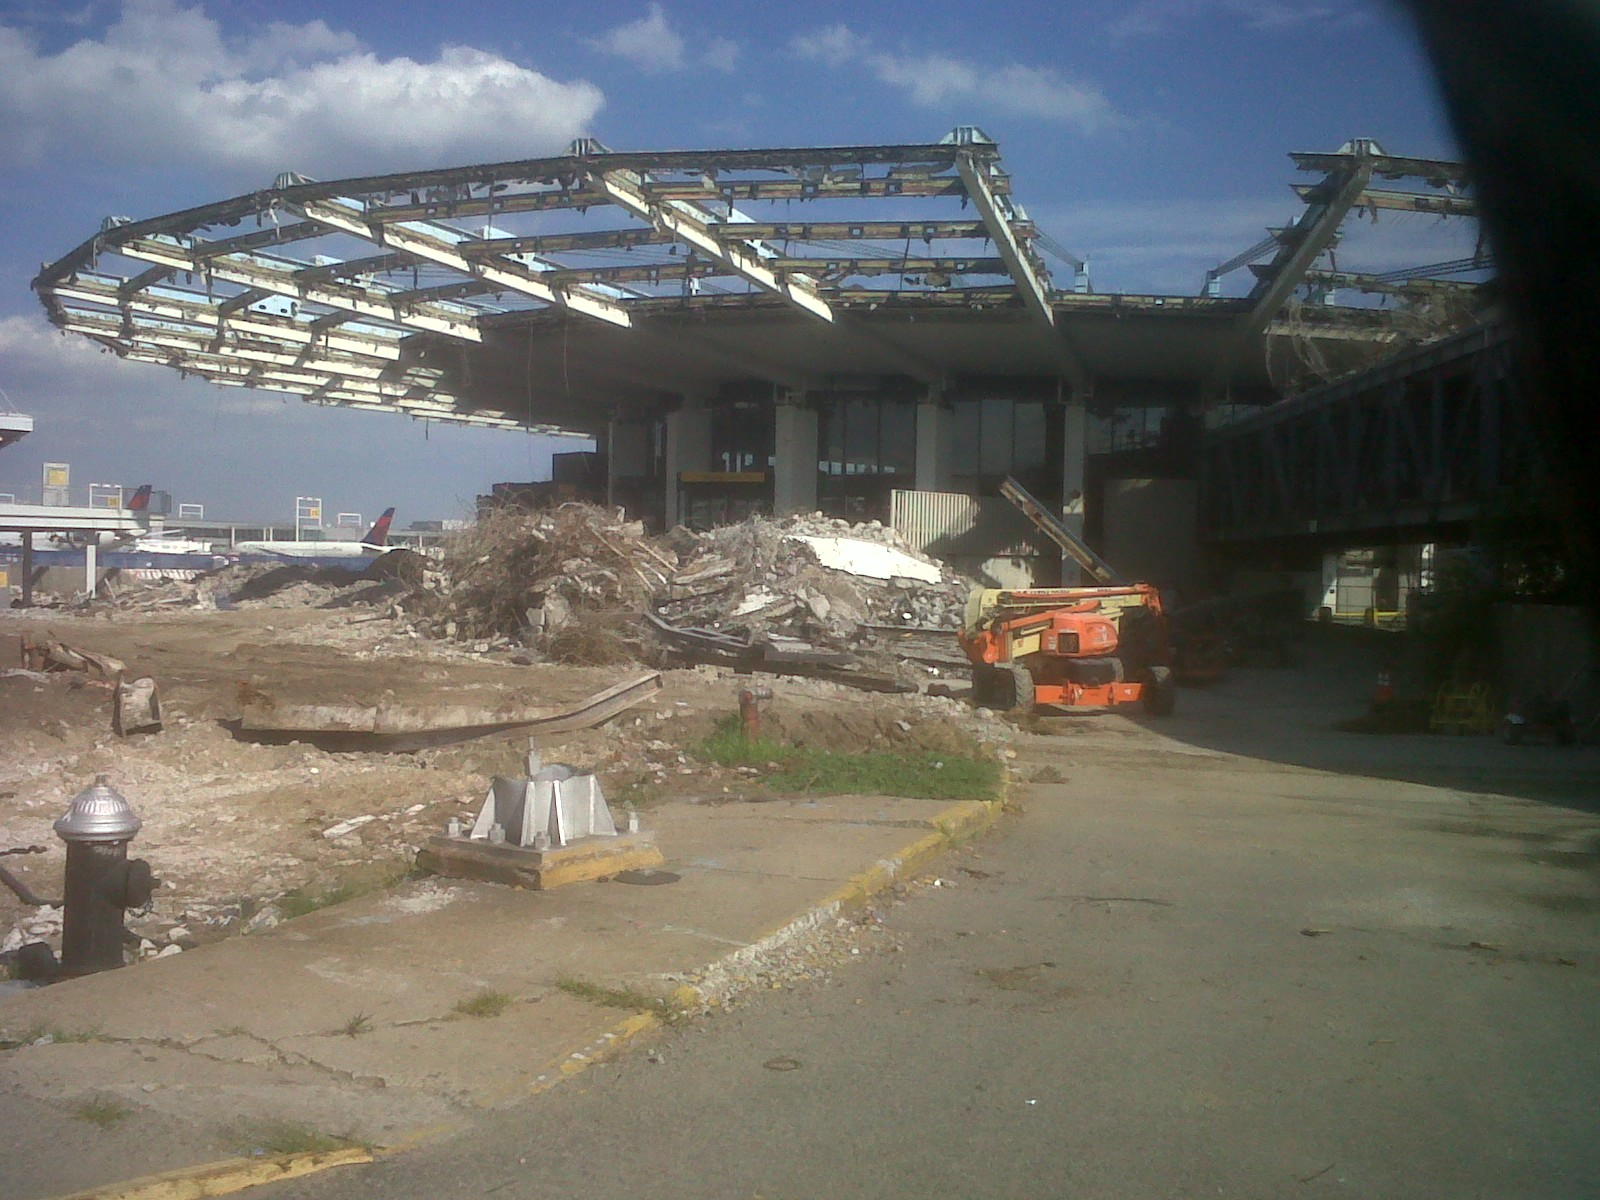 Demolition of the Worldport August 10, 2013